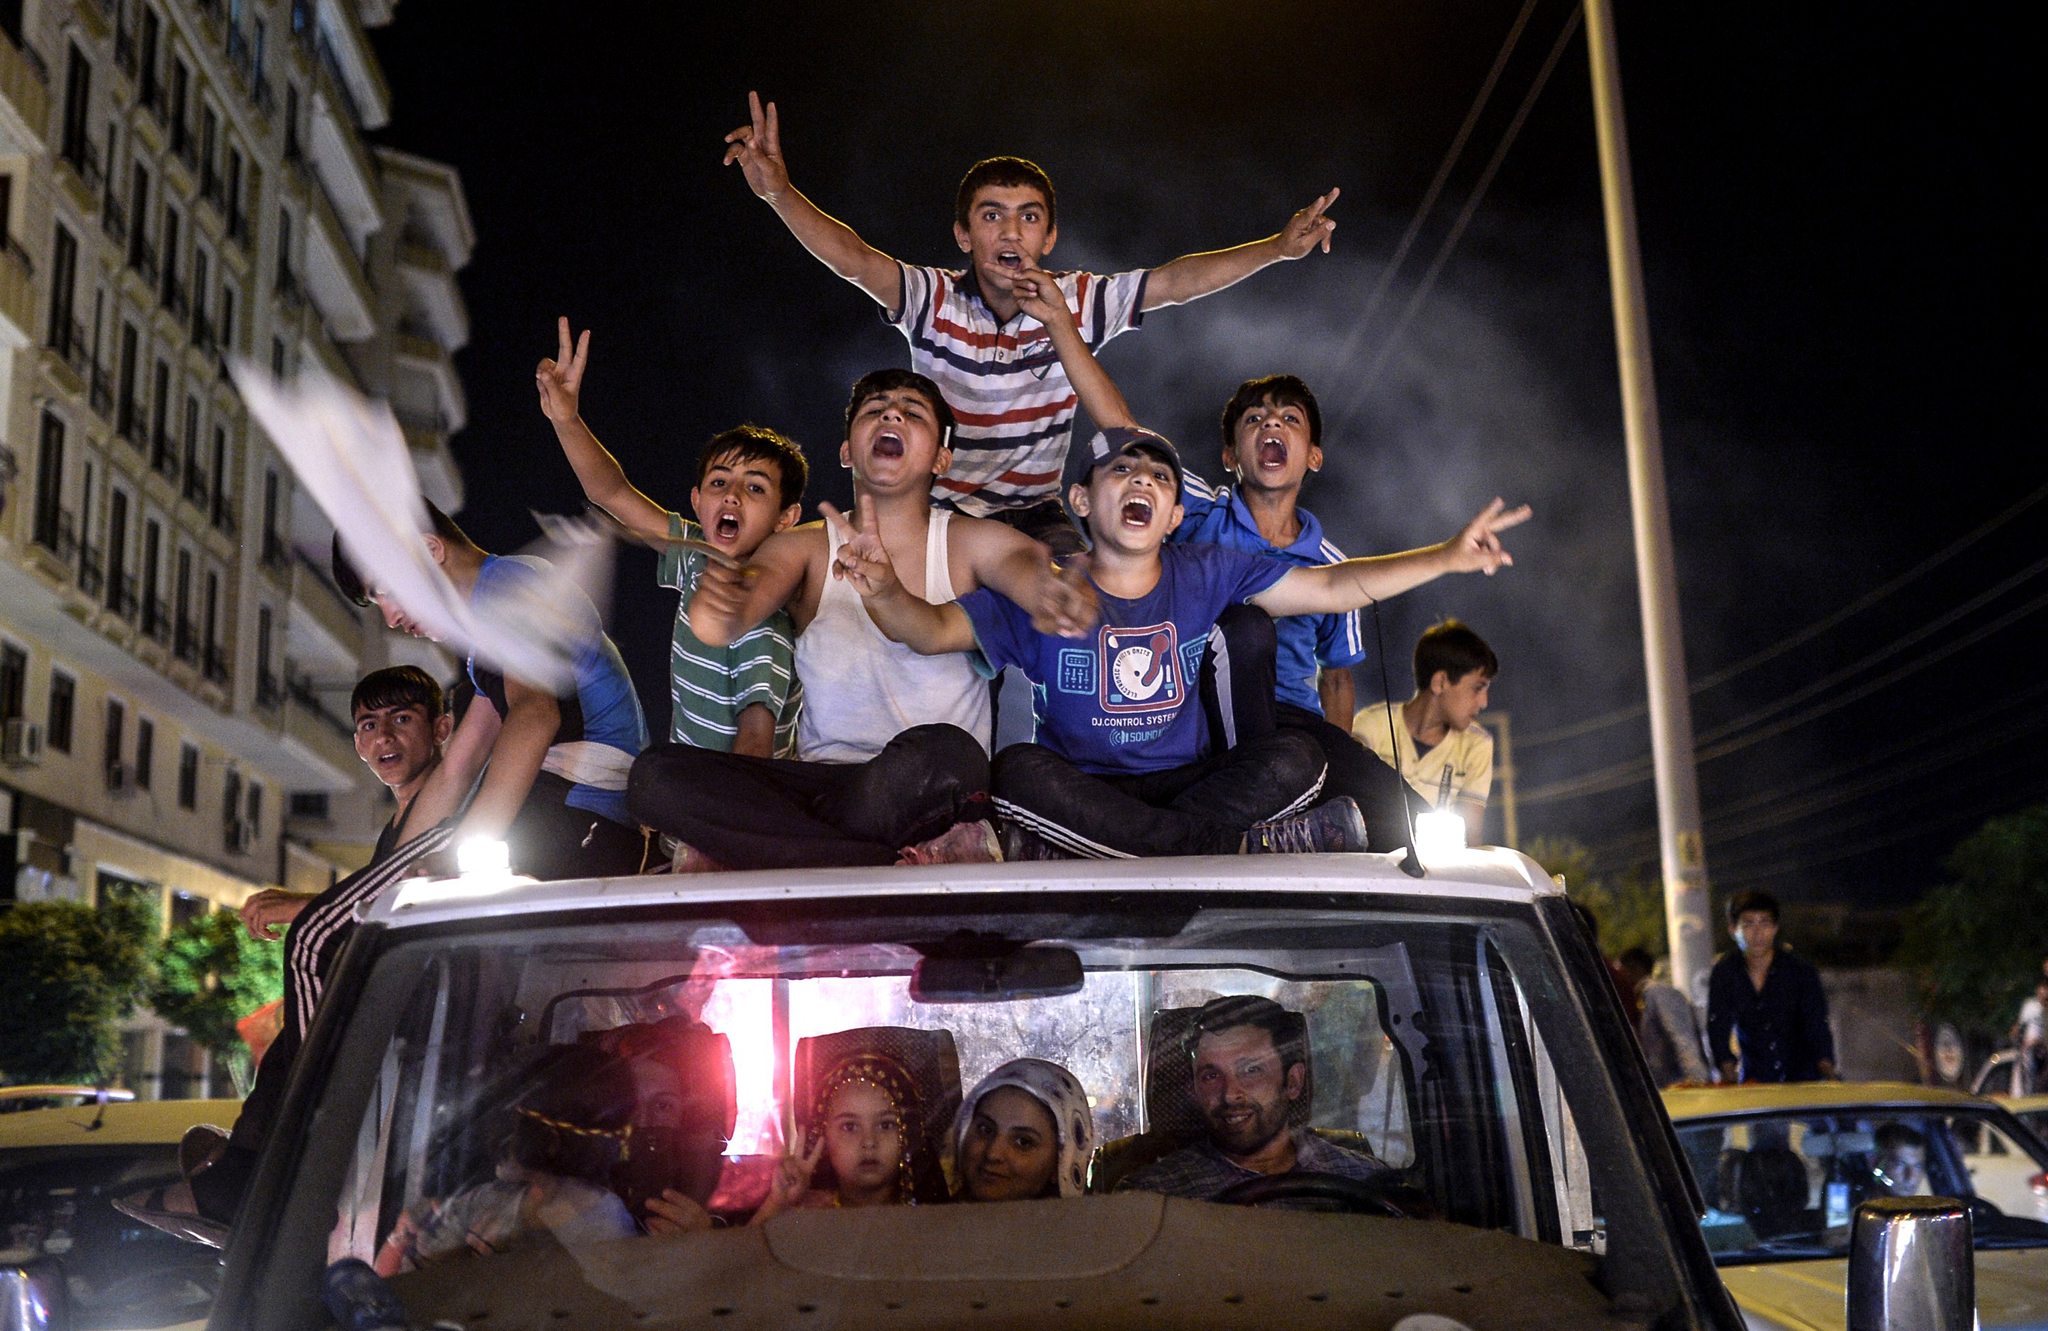 Young supporters of pro-Kurdish...TOPSHOTS Young supporters of pro-Kurdish Peoples' Democratic Party (HDP) celebrate in the streets the results of the legislative election, in Diyarbakir on June 7, 2015. The Turkey's Islamic-rooted Justice and Development Party (AKP) secured 41 percent of the vote, followed by the Republican People's Party (CHP) on 25 percent, the Nationalist Movement Party (MHP) on 16.5 and the pro-Kurdish People's Democratic Party (HDP) fourth on 12.5 percent. AFP PHOTO / BULENT KILICBULENT KILIC/AFP/Getty Images